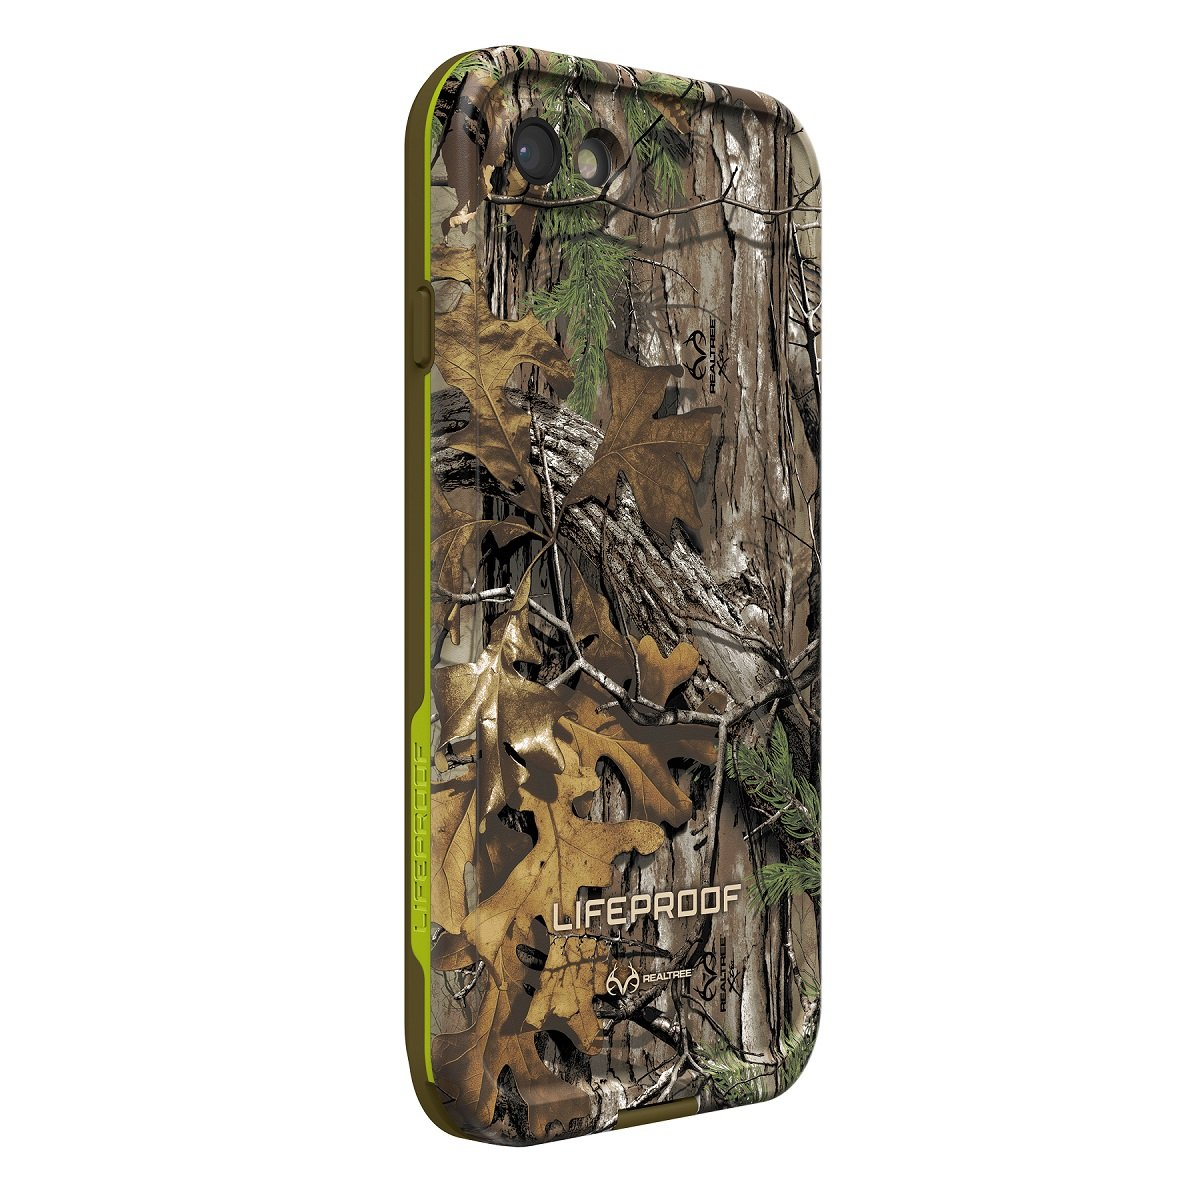 lowest price 9b846 76c57 LifeProof FRĒ Case for iPhone 7 in Realtree Camo